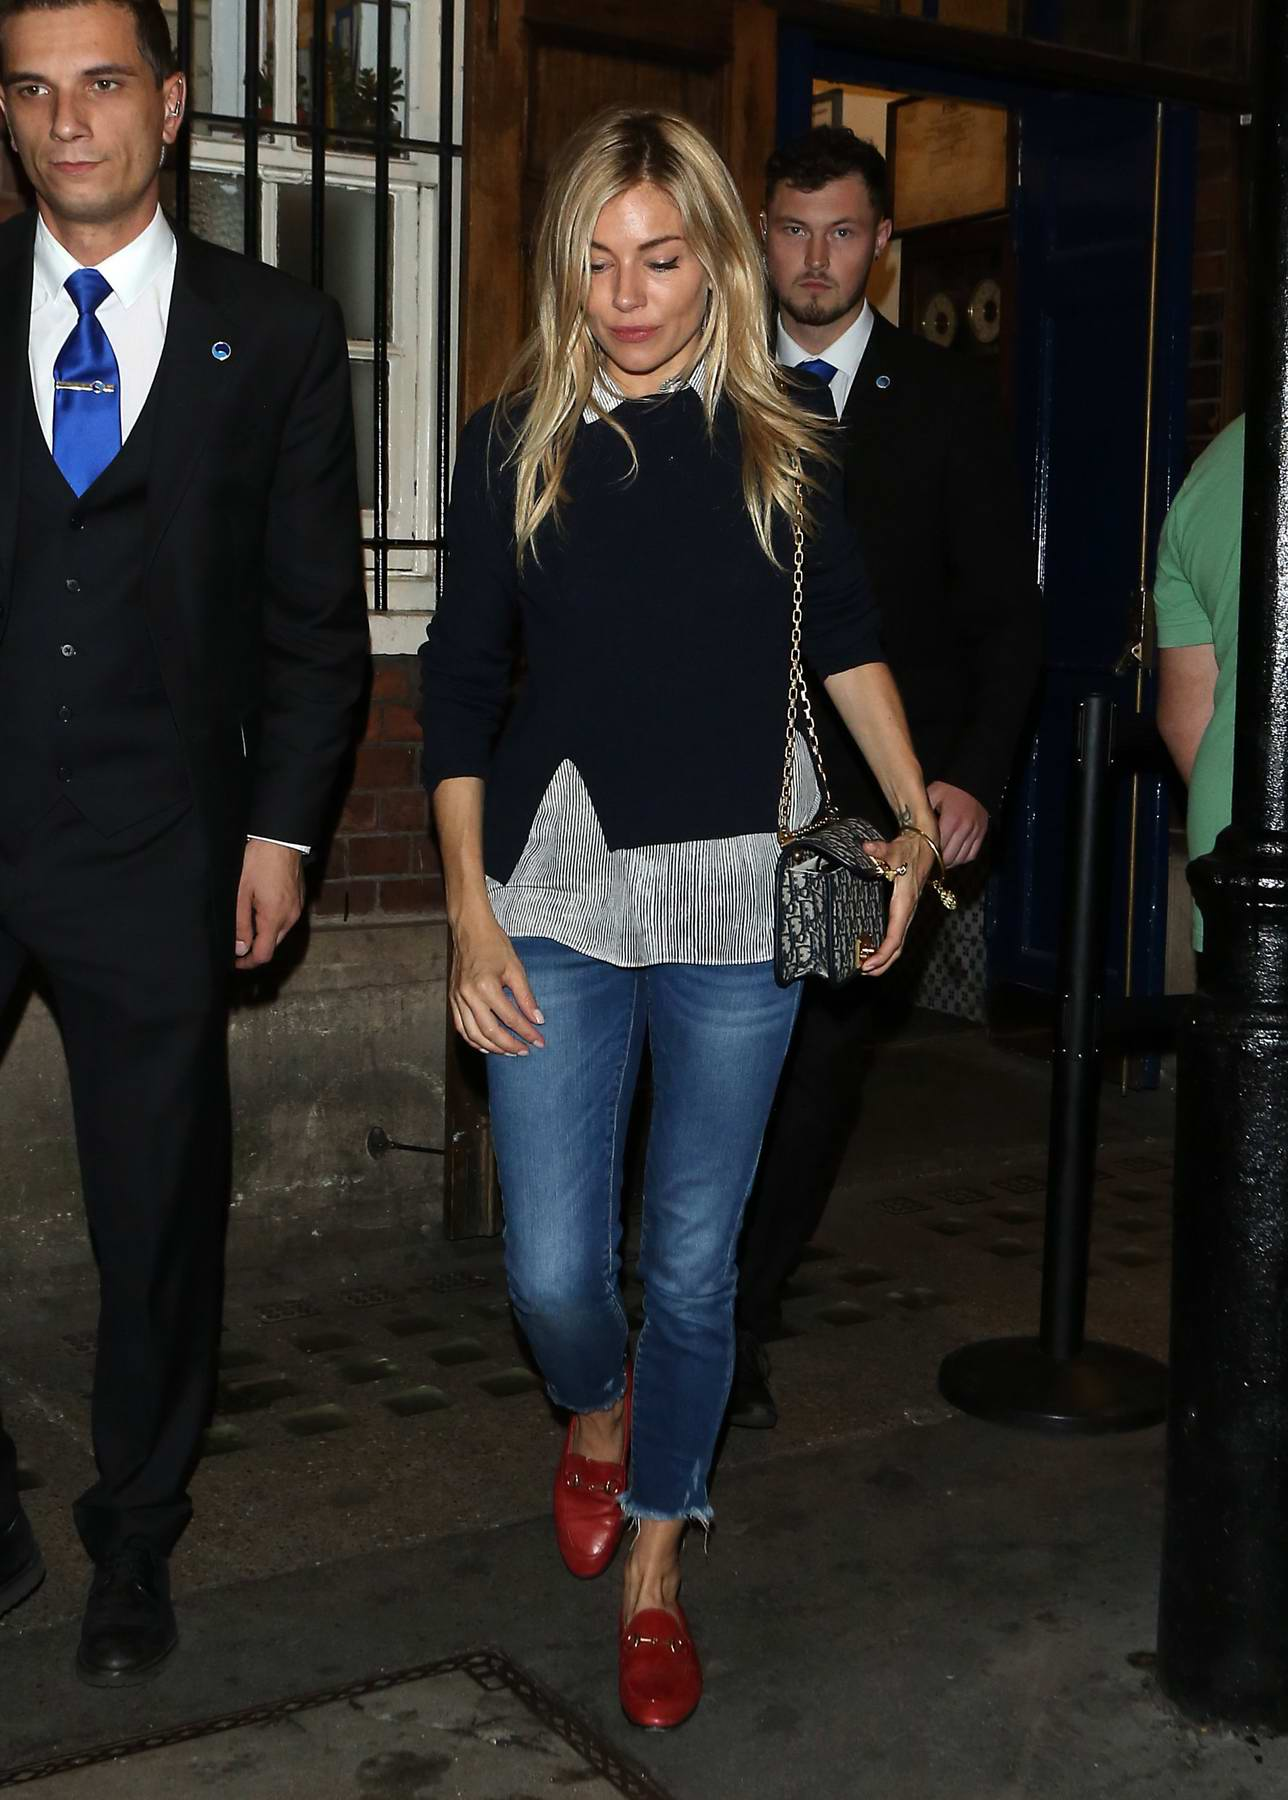 Sienna Miller leaving after performing in Cat on a Hot Tin Roof at the Apollo Theatre in London